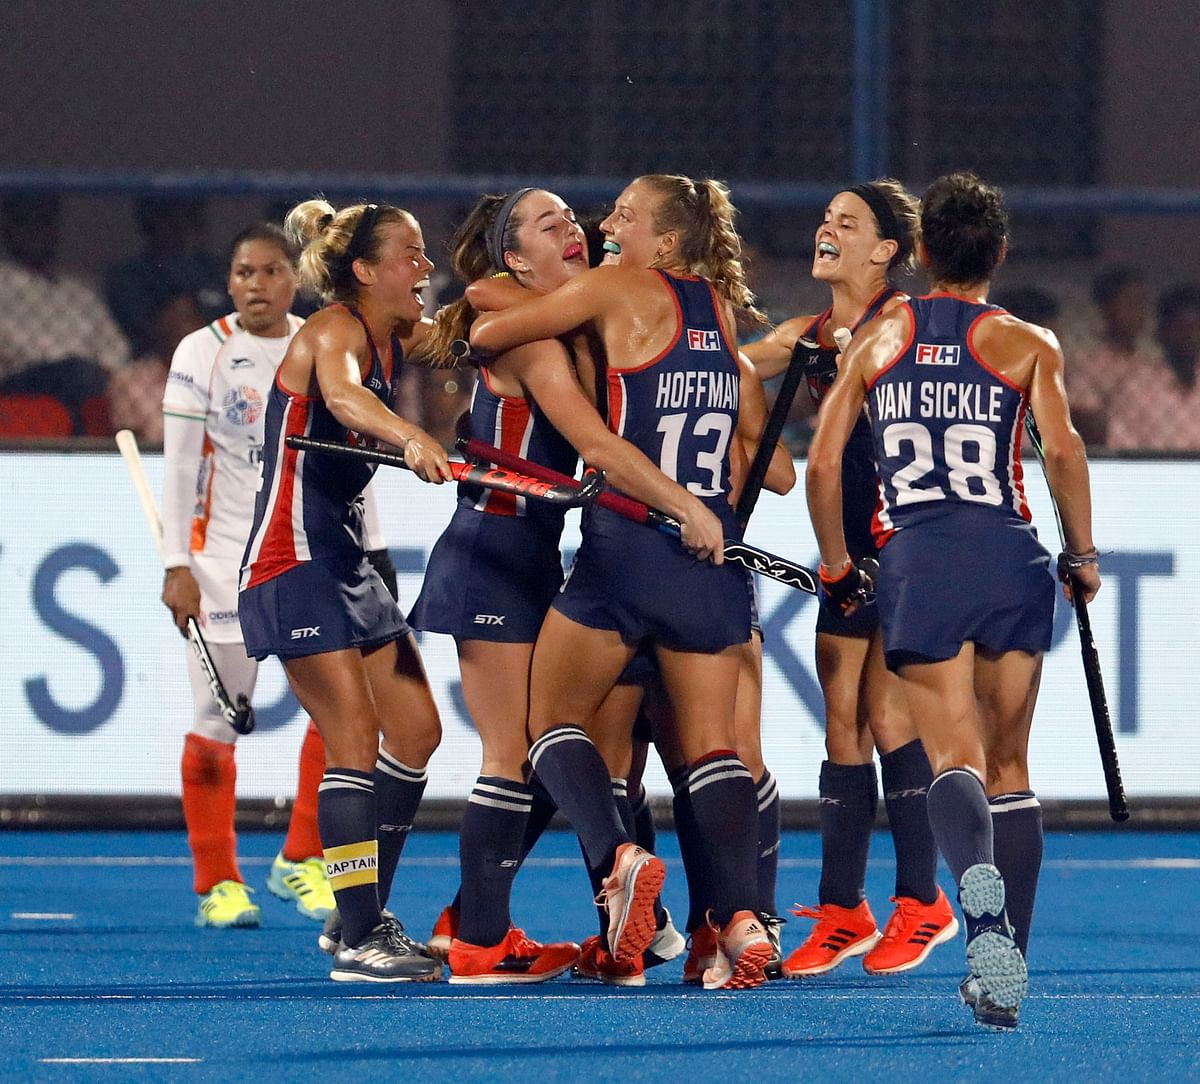 Indian Women's & Men's Hockey Teams Qualify For 2020 Olympics